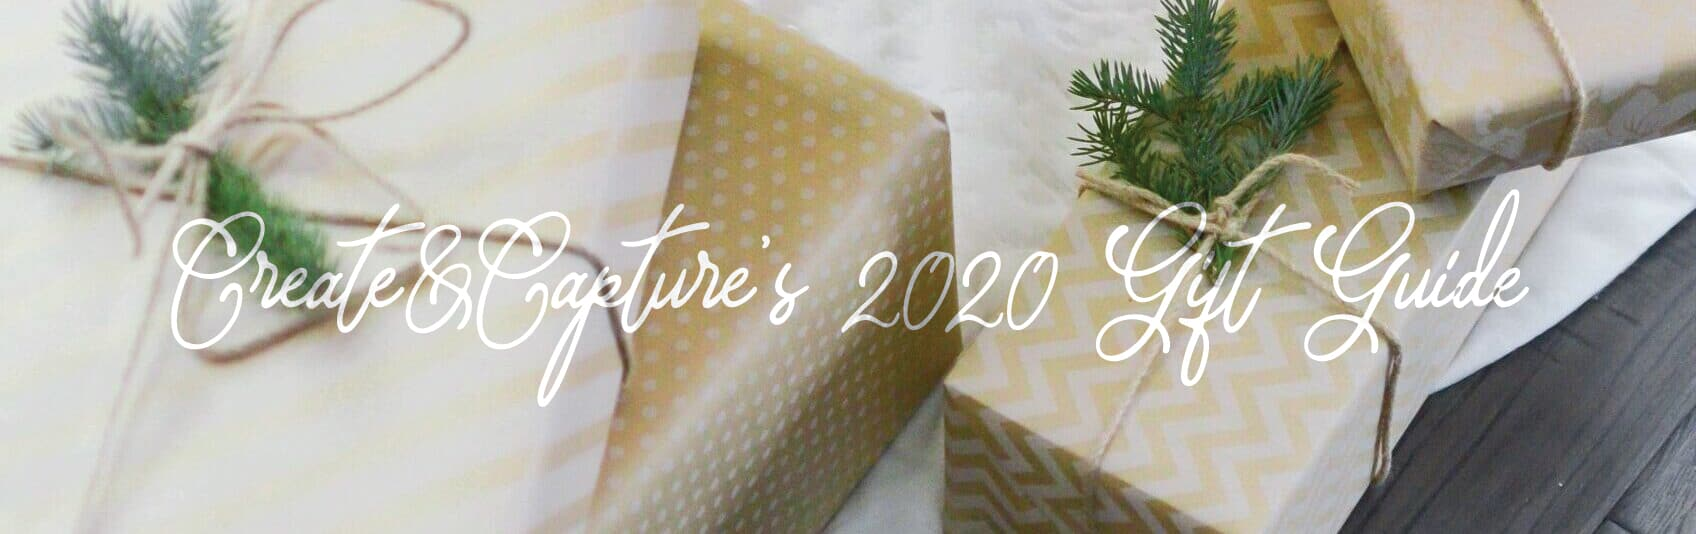 Create&Capture's 2020 Gift Guide! Support Small Businesses with Your Holiday Shopping This Year!